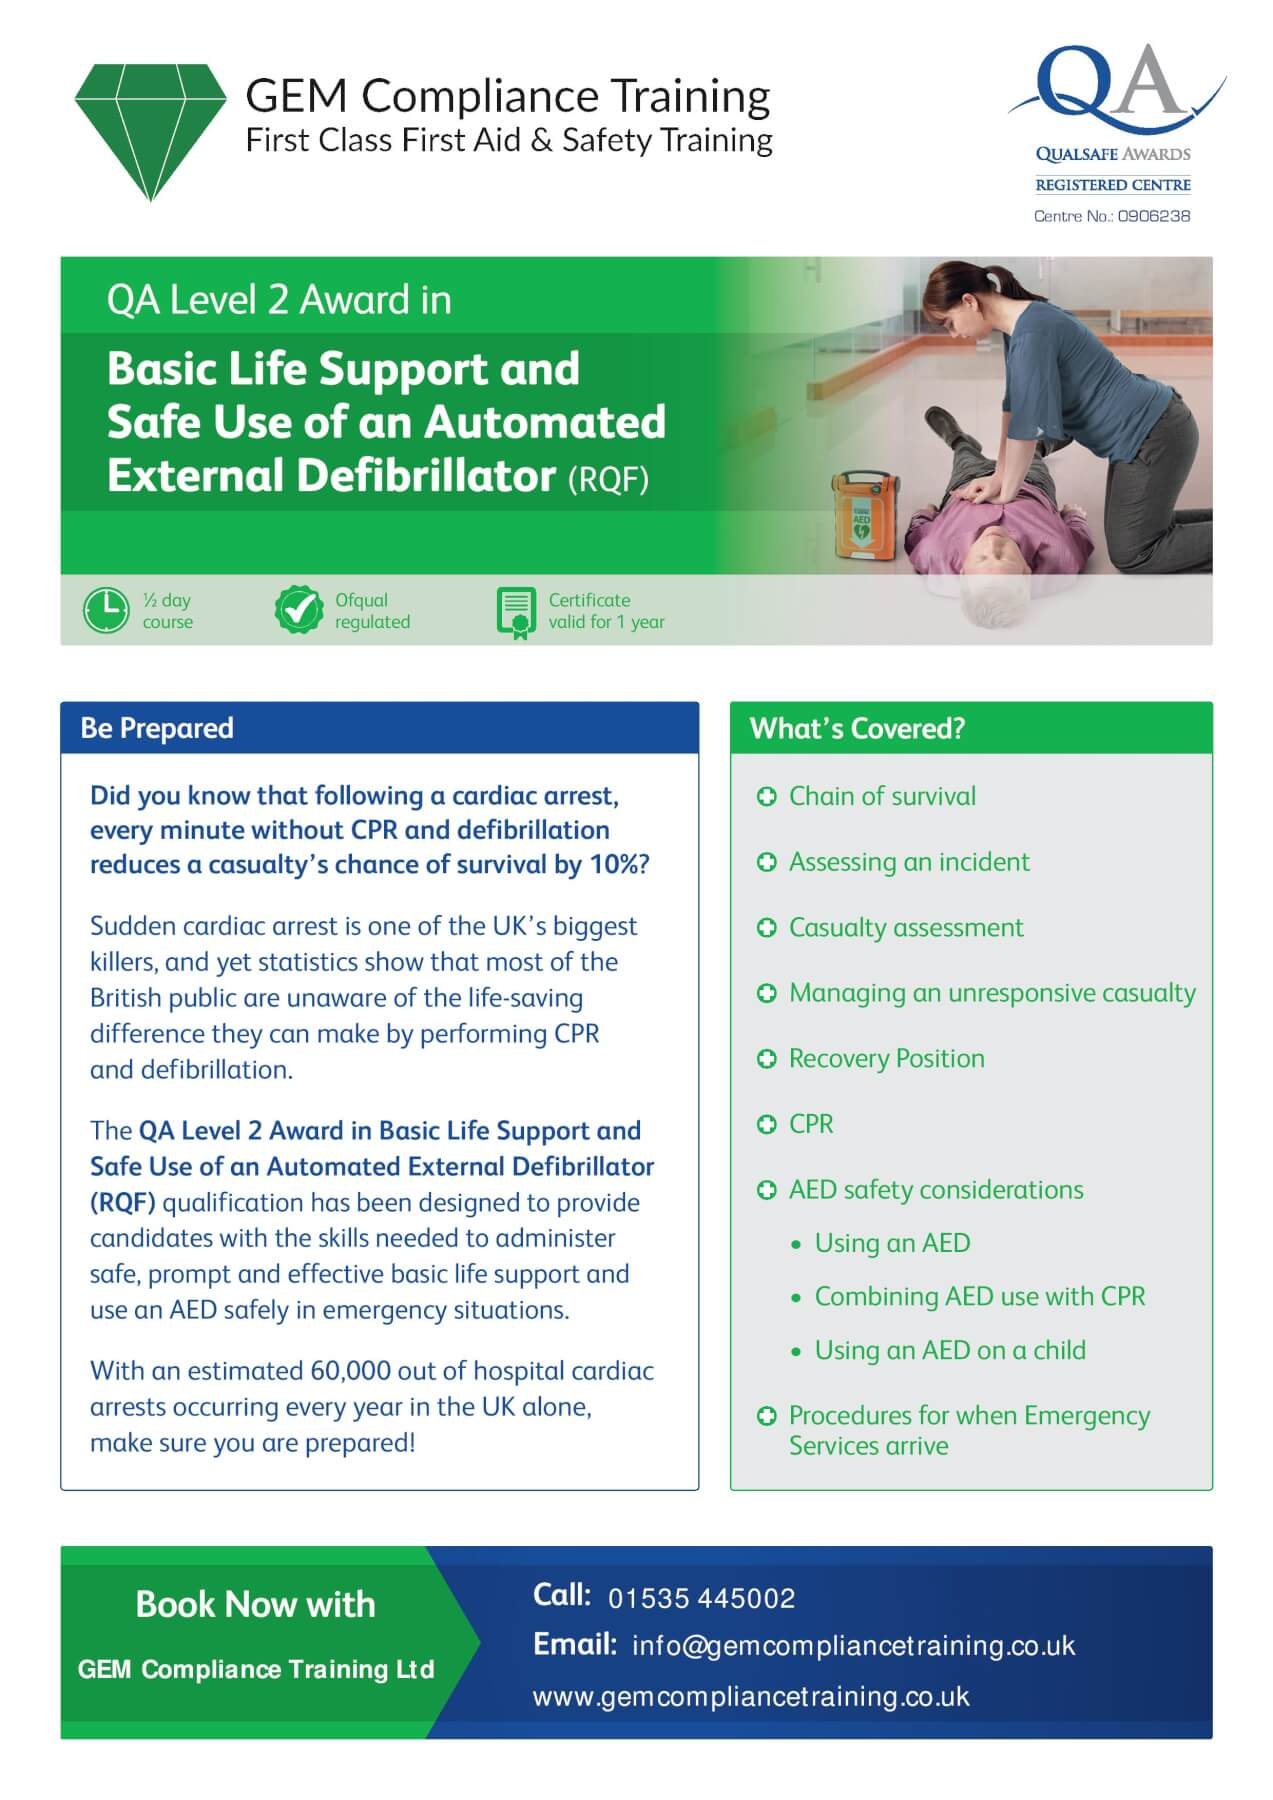 BLS & Safe Use of an AED